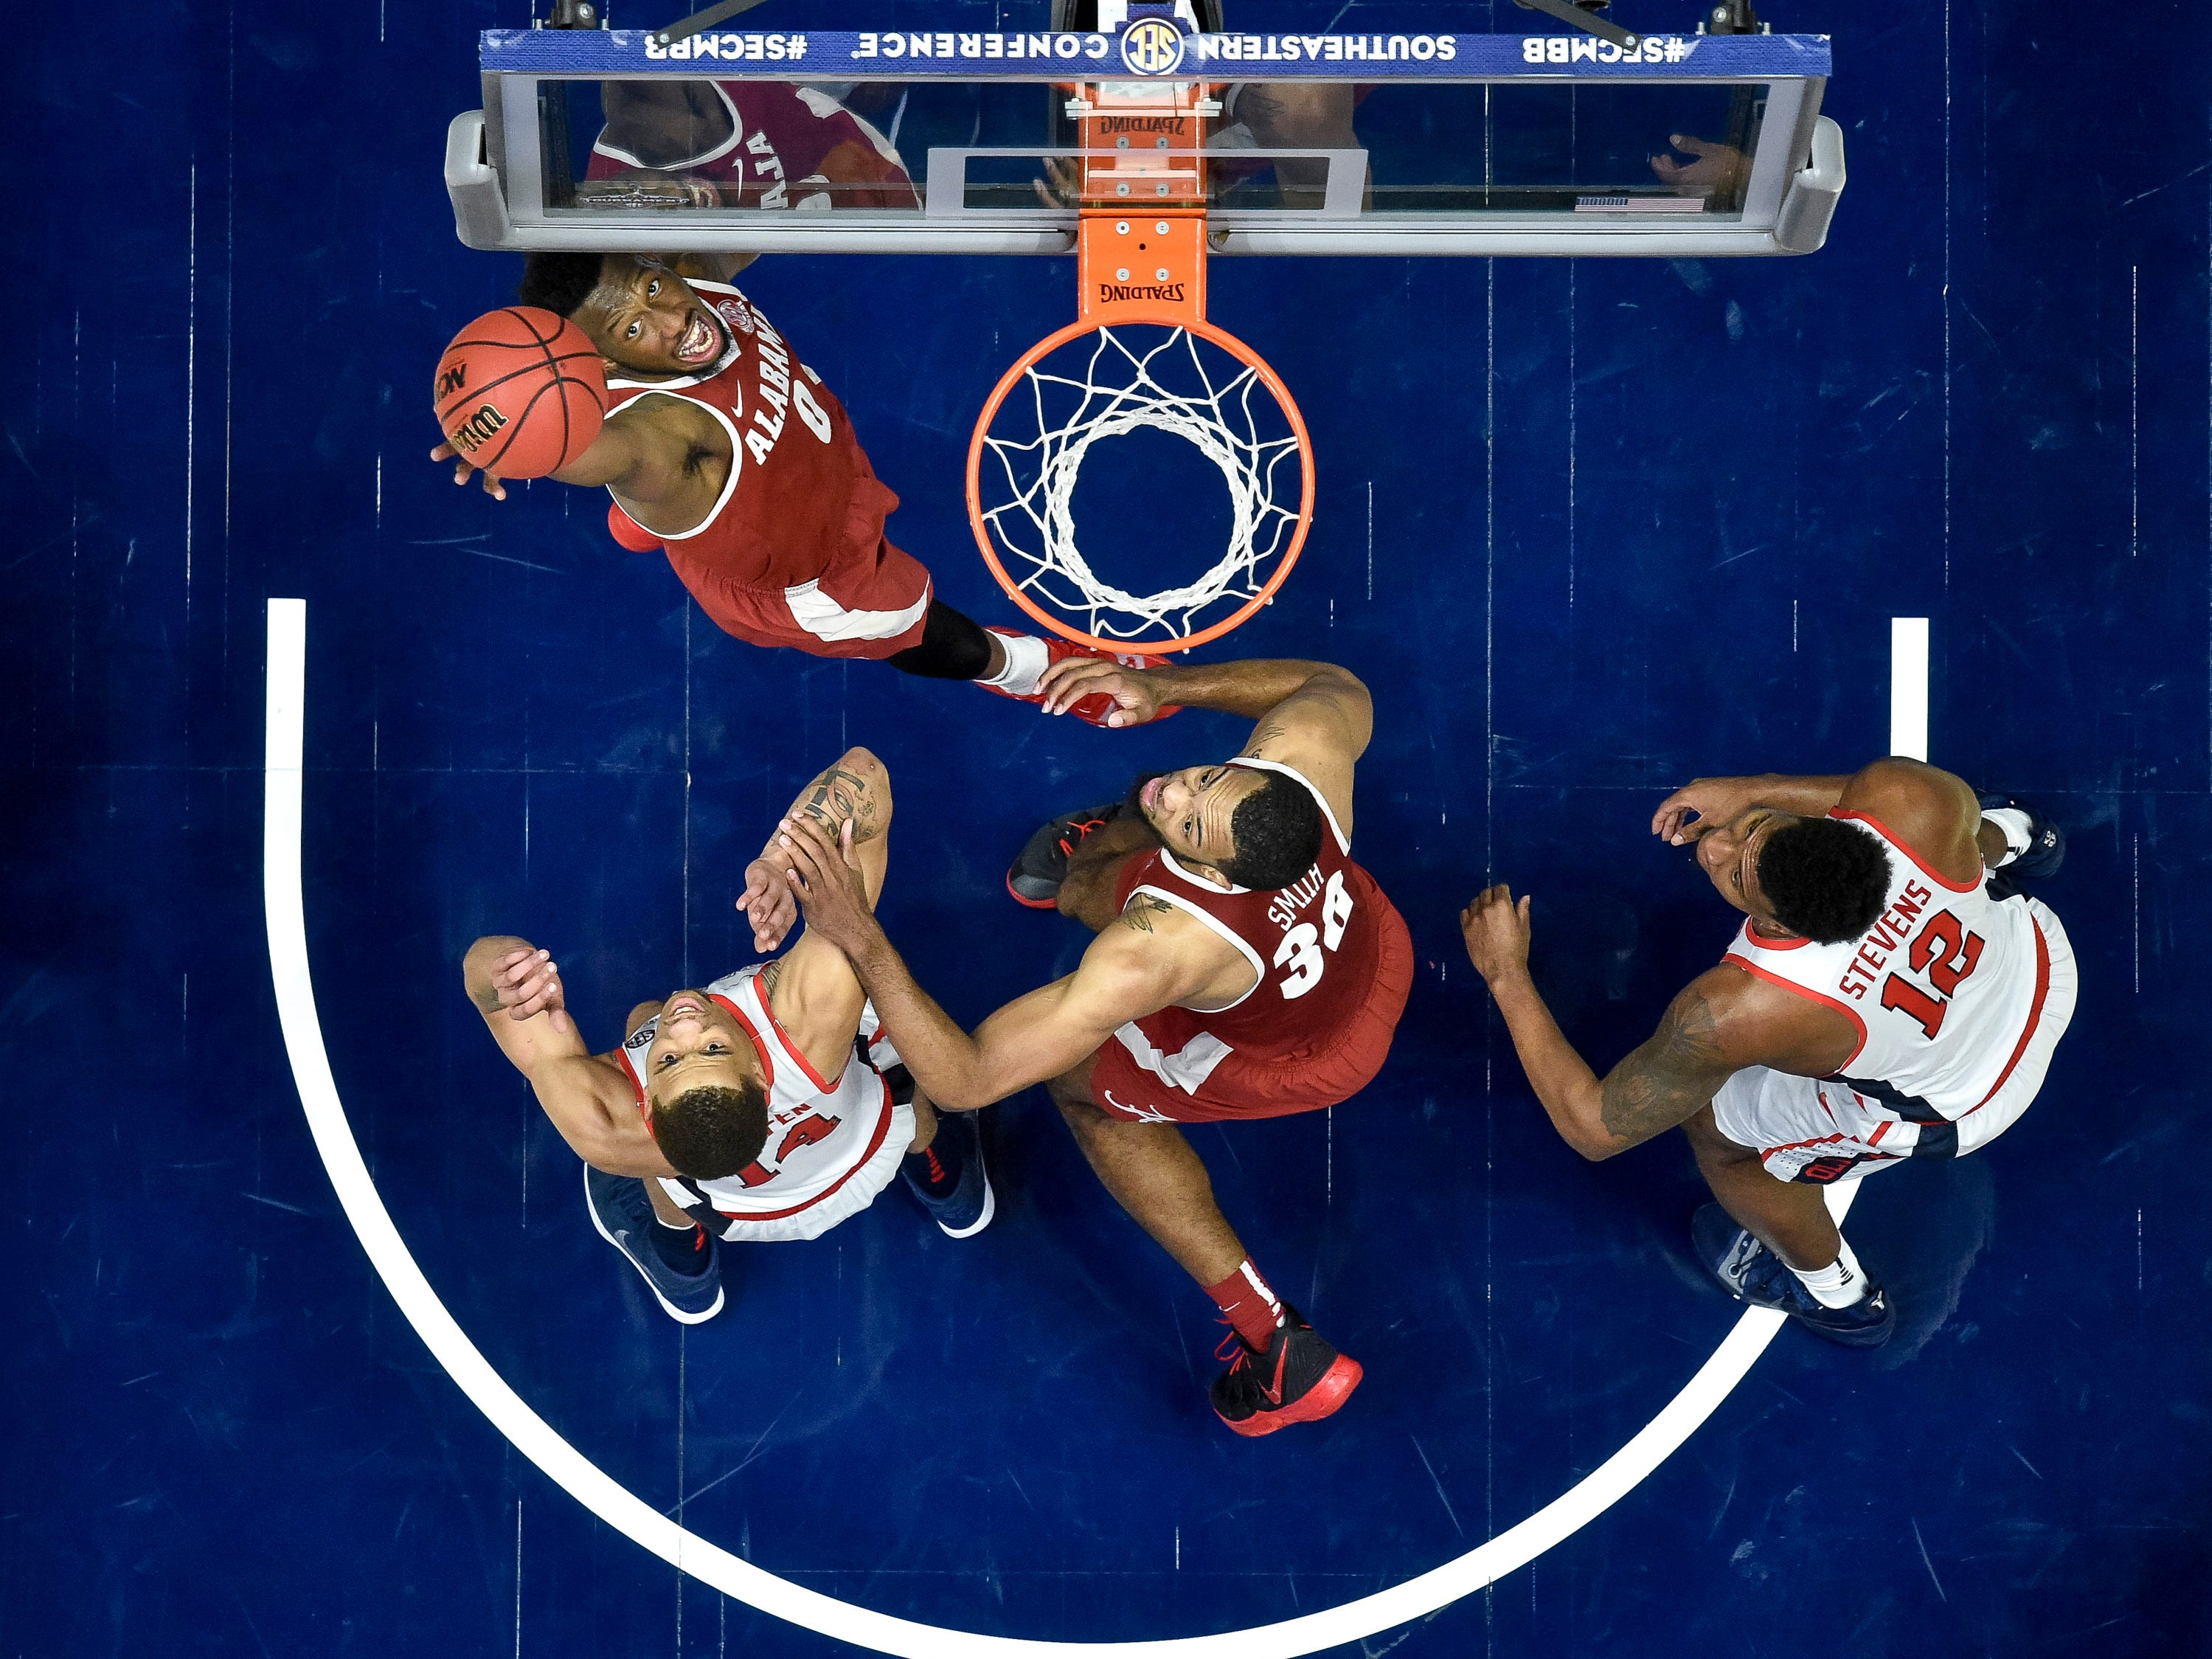 Alabama forward Donta Hall (0) shoots against Ole Miss during the second half of the SEC Men's Basketball Tournament game at Bridgestone Arena in Nashville, Tenn., Thursday, March 14, 2019.